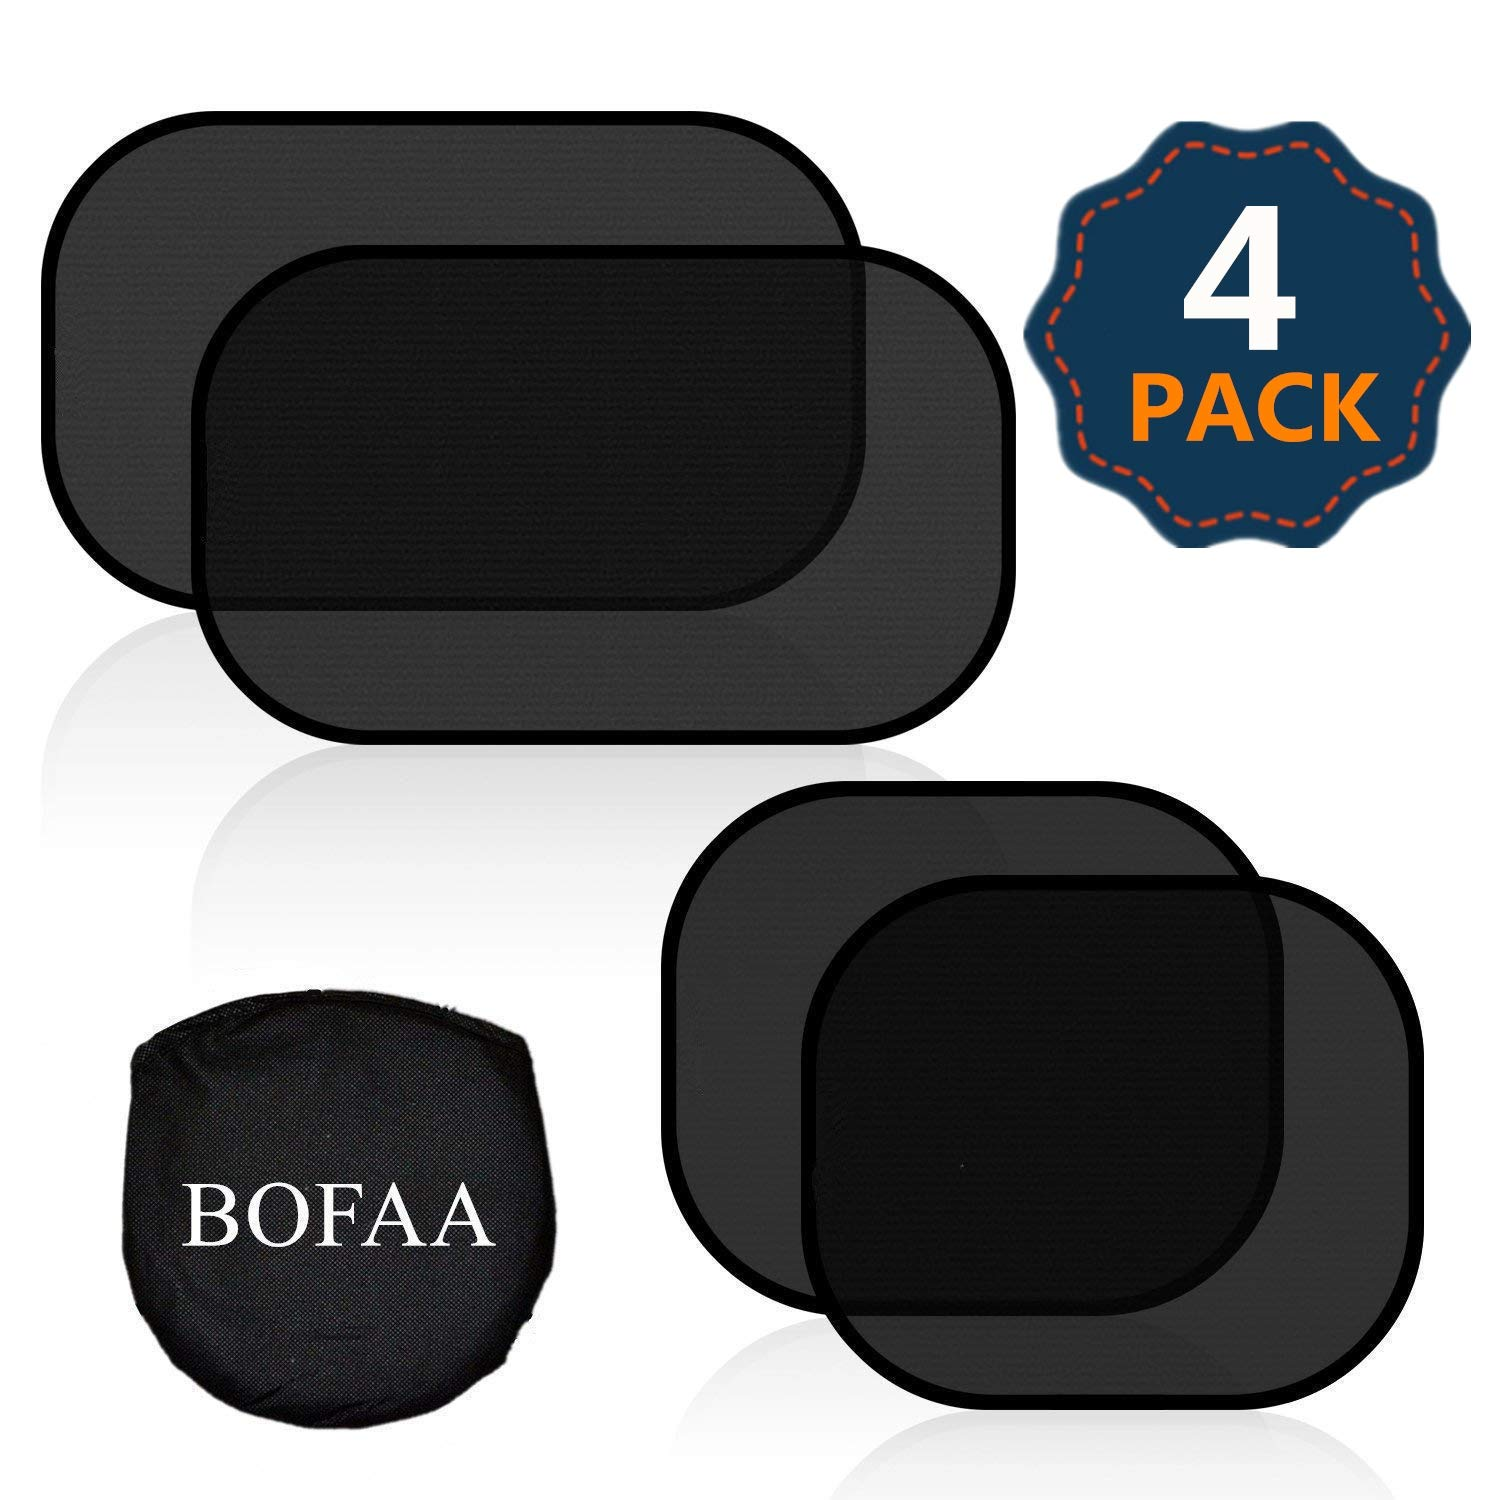 BOFAA Car Window Shade for Baby (4 Pack) 80GSM Cling Car Sun Shade for Side window - Sun, Glare And UV Rays Protection For Your kids - 2 Pack 51 * 31CM and 2 Pack 44 * 36CM Sunshade for Car Baby Ltd.